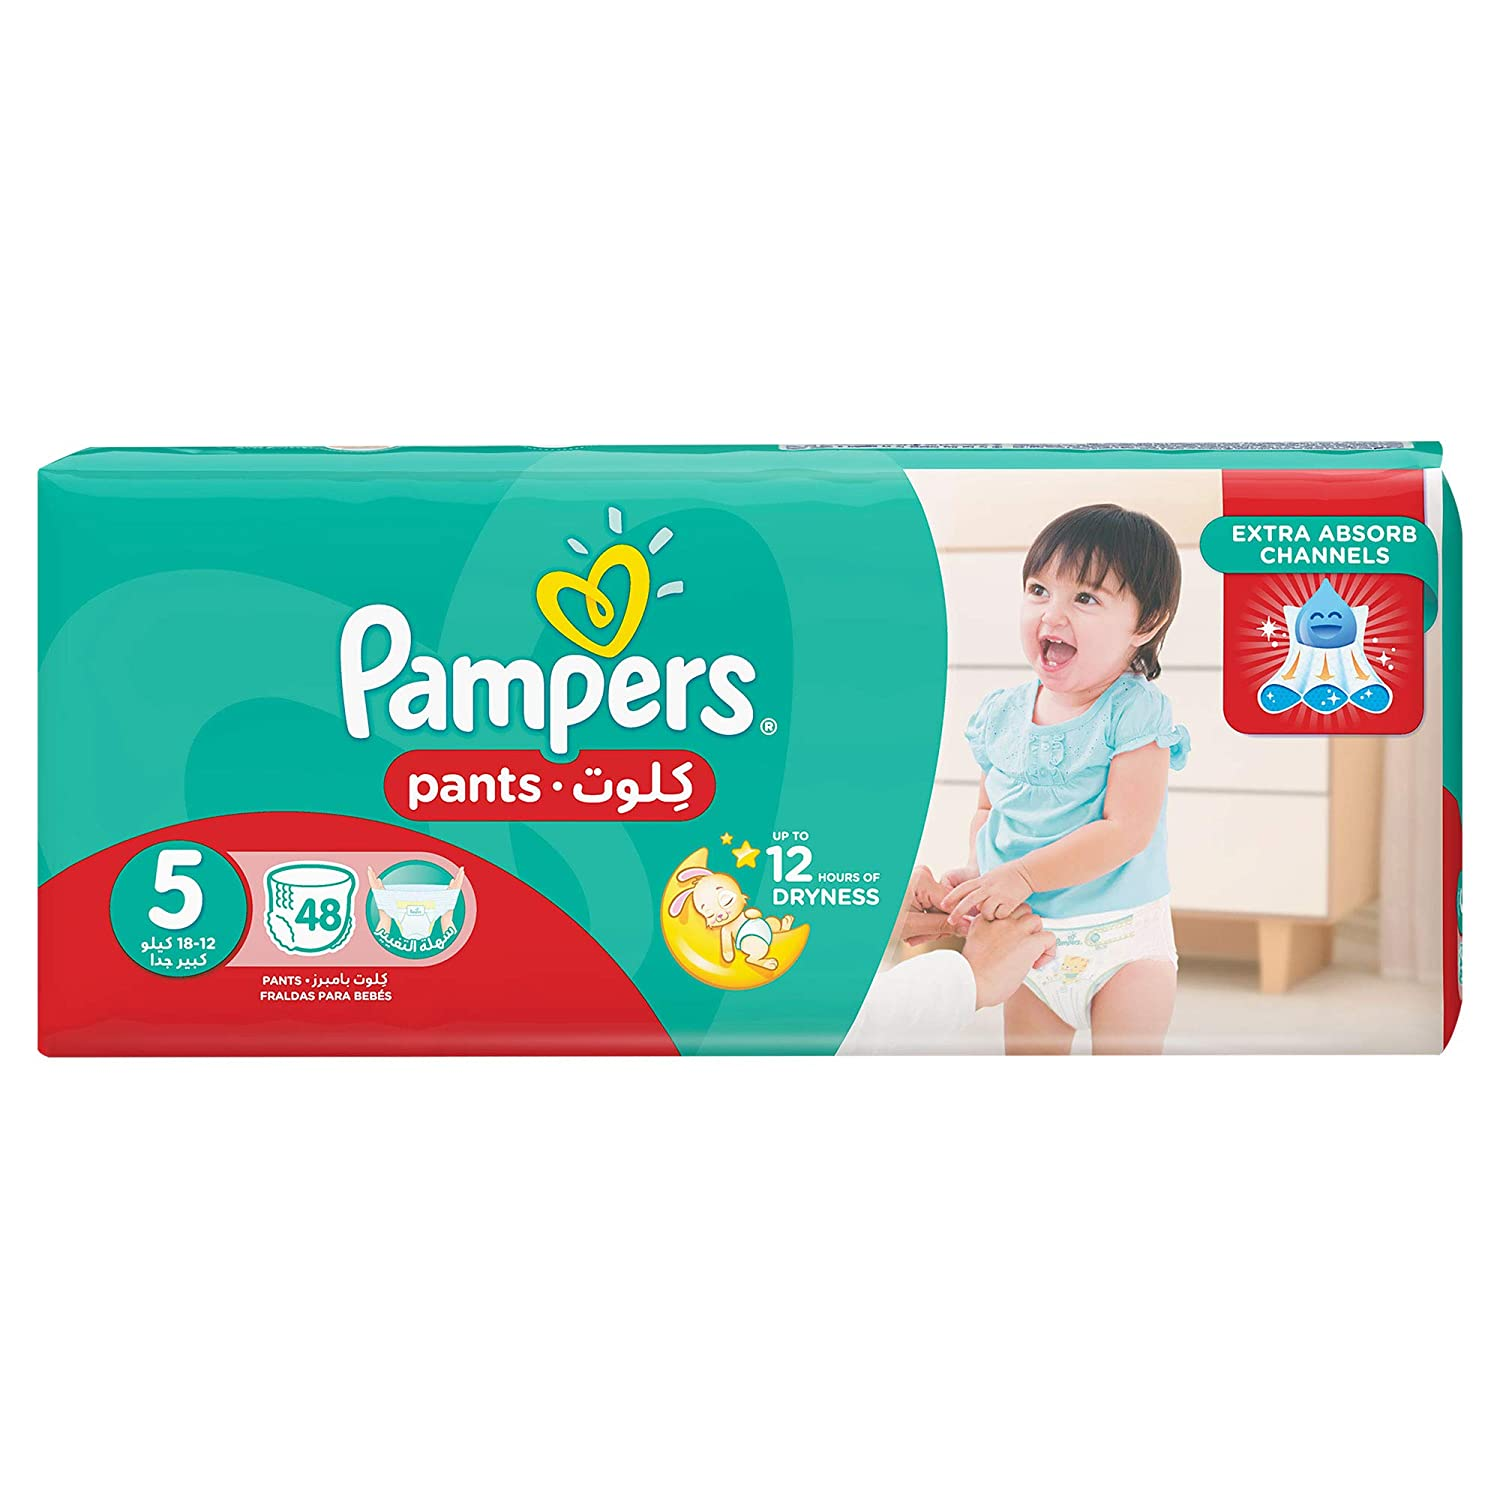 ad3cc949b Pampers Pants Diapers, Size 5, Jumbo Pack - 12-18 kg, 48 Count: Amazon.ae